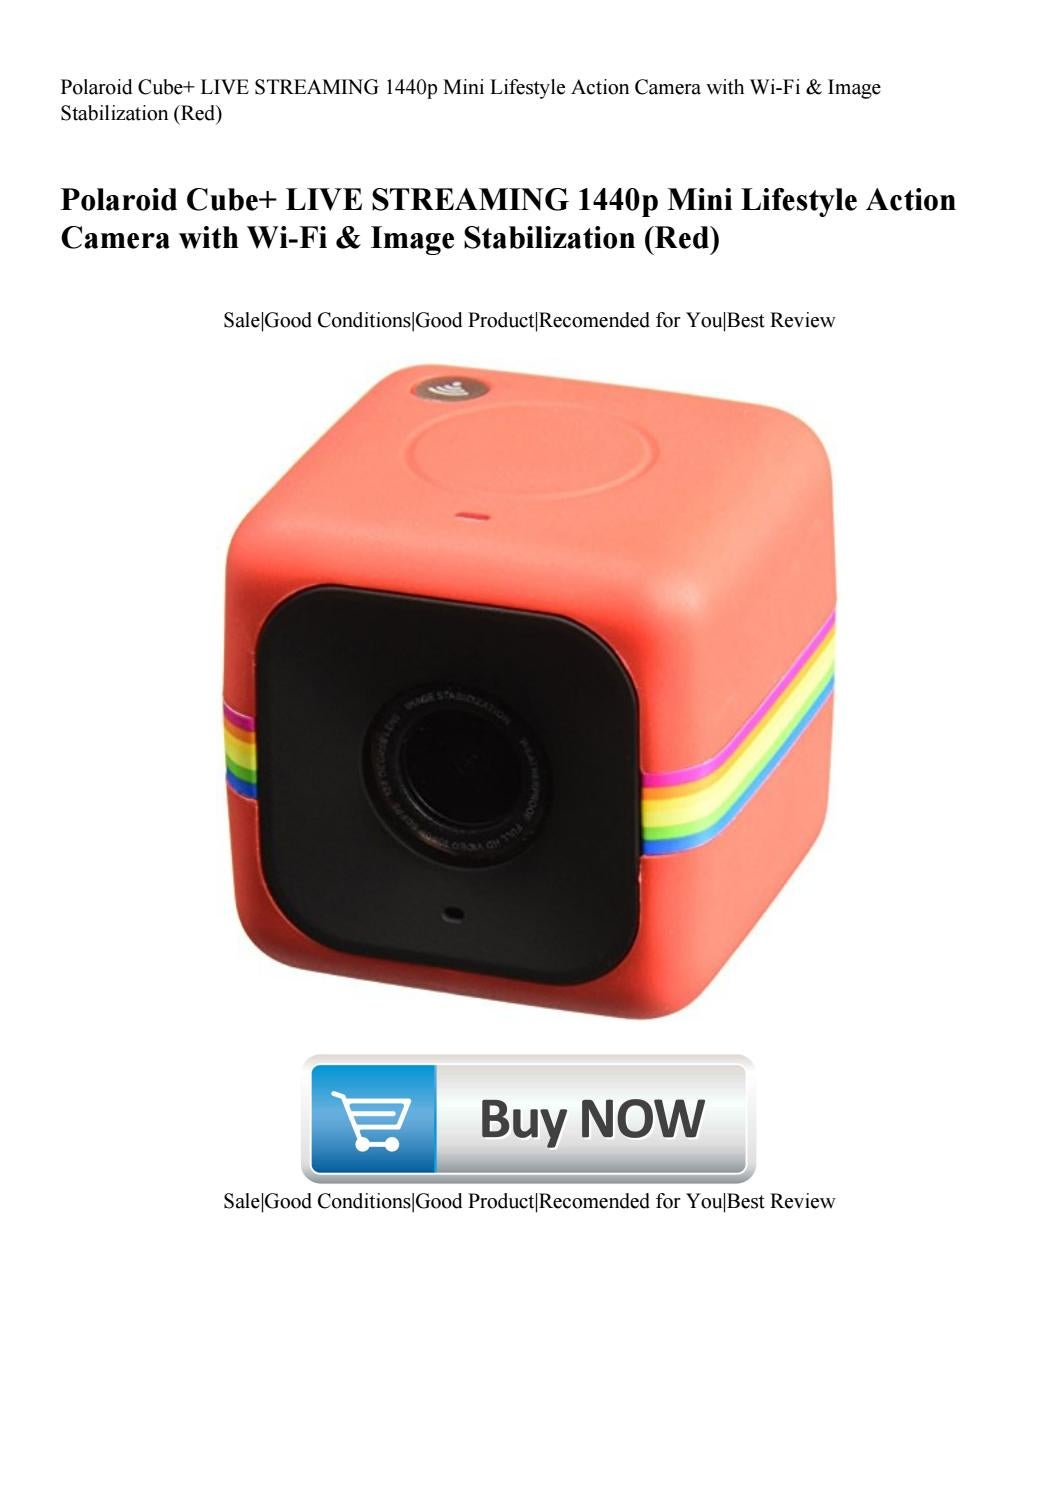 Polaroid Cube+ LIVE STREAMING 1440p Mini Lifestyle Action